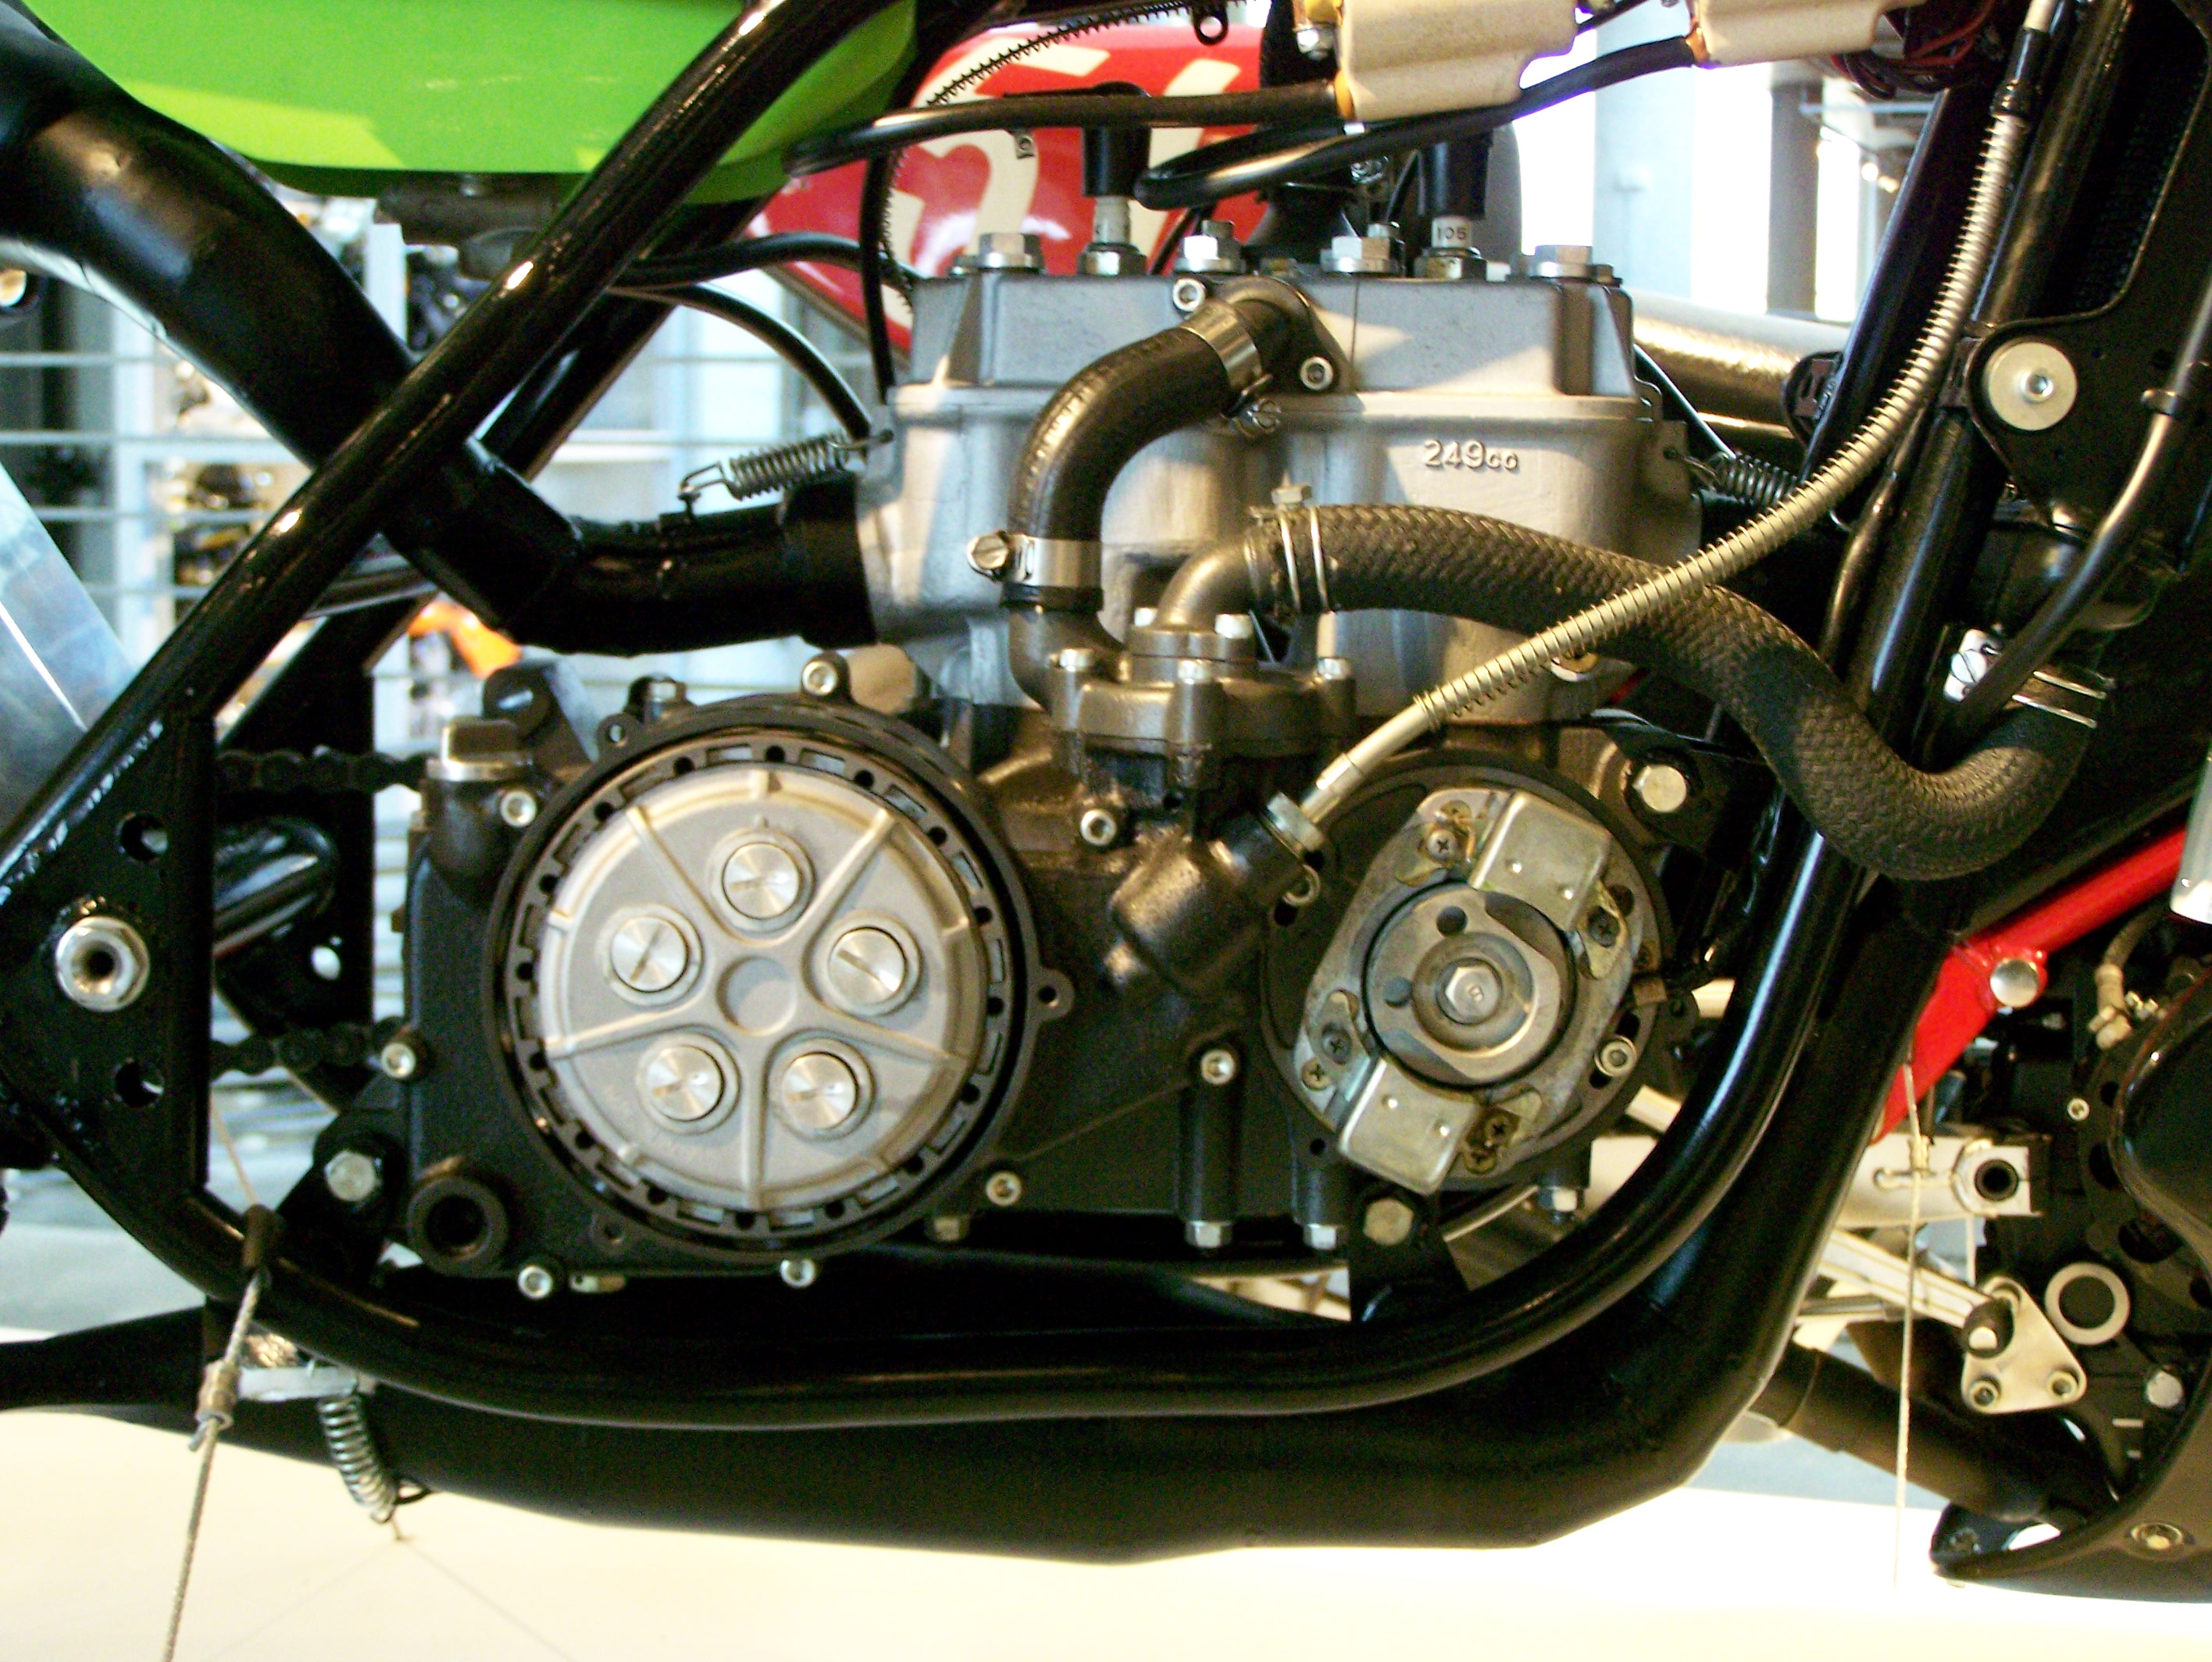 Kawasaki Kr on Small V Twin Motorcycle Engines